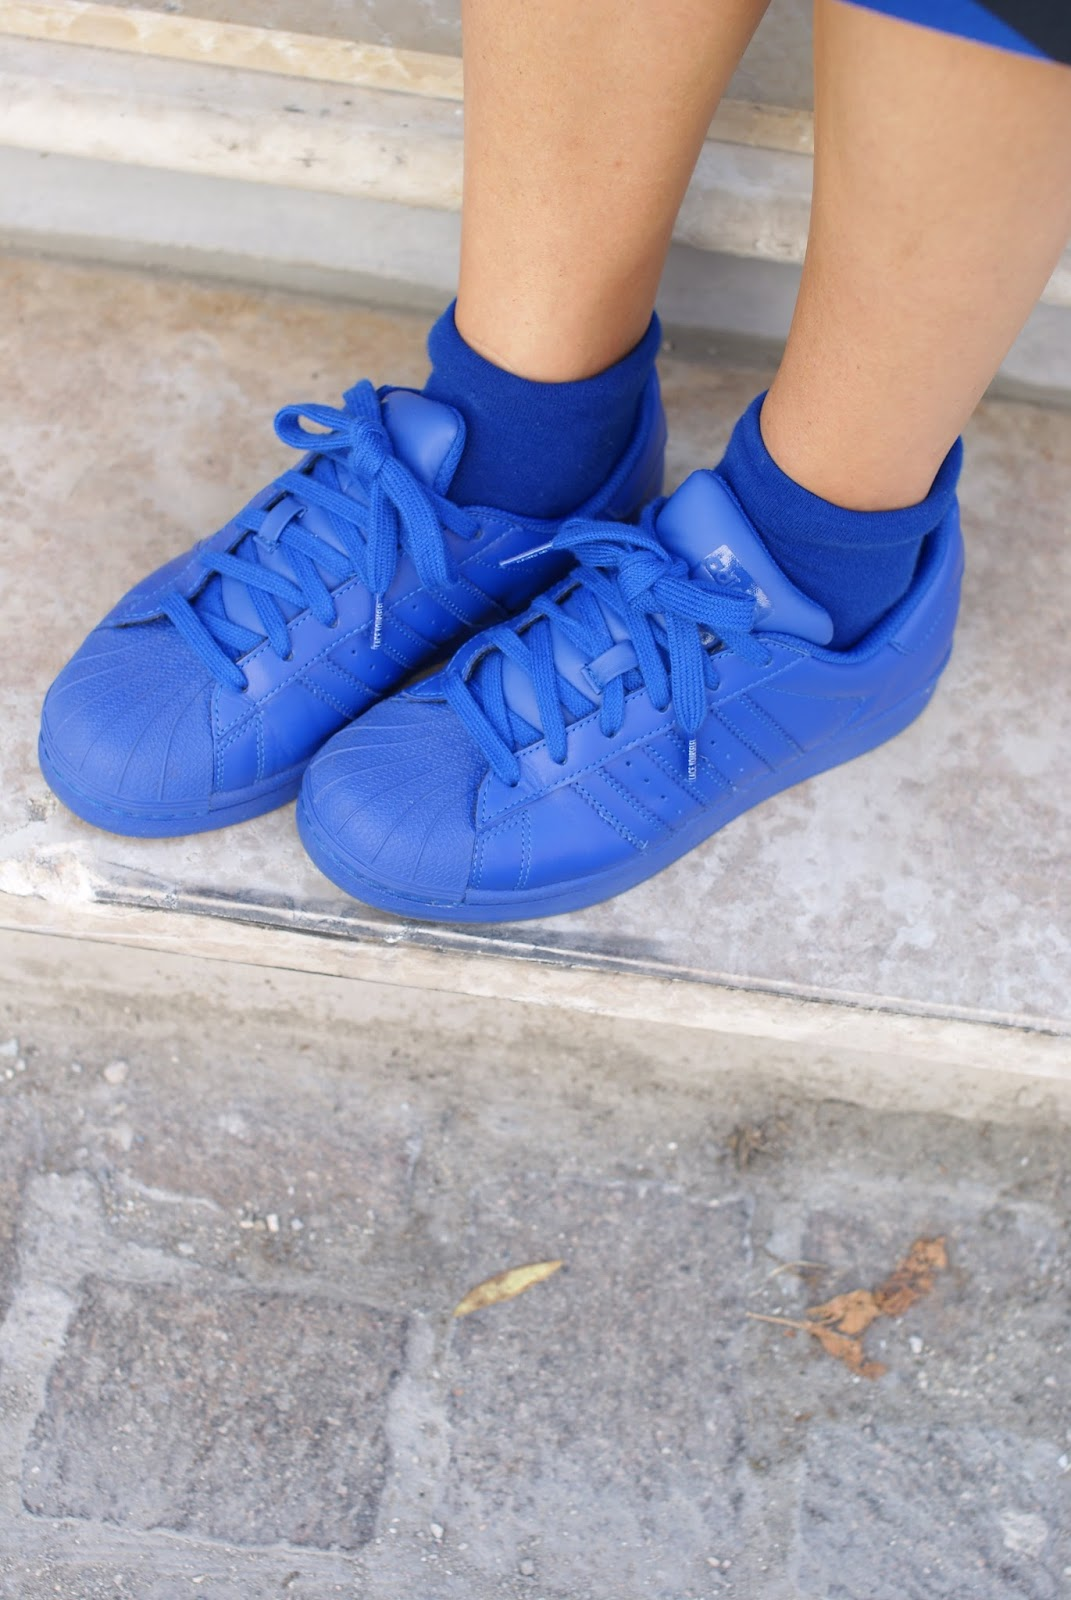 adidas supercolor sneakers in blue on Fashion and Cookies fashion blog